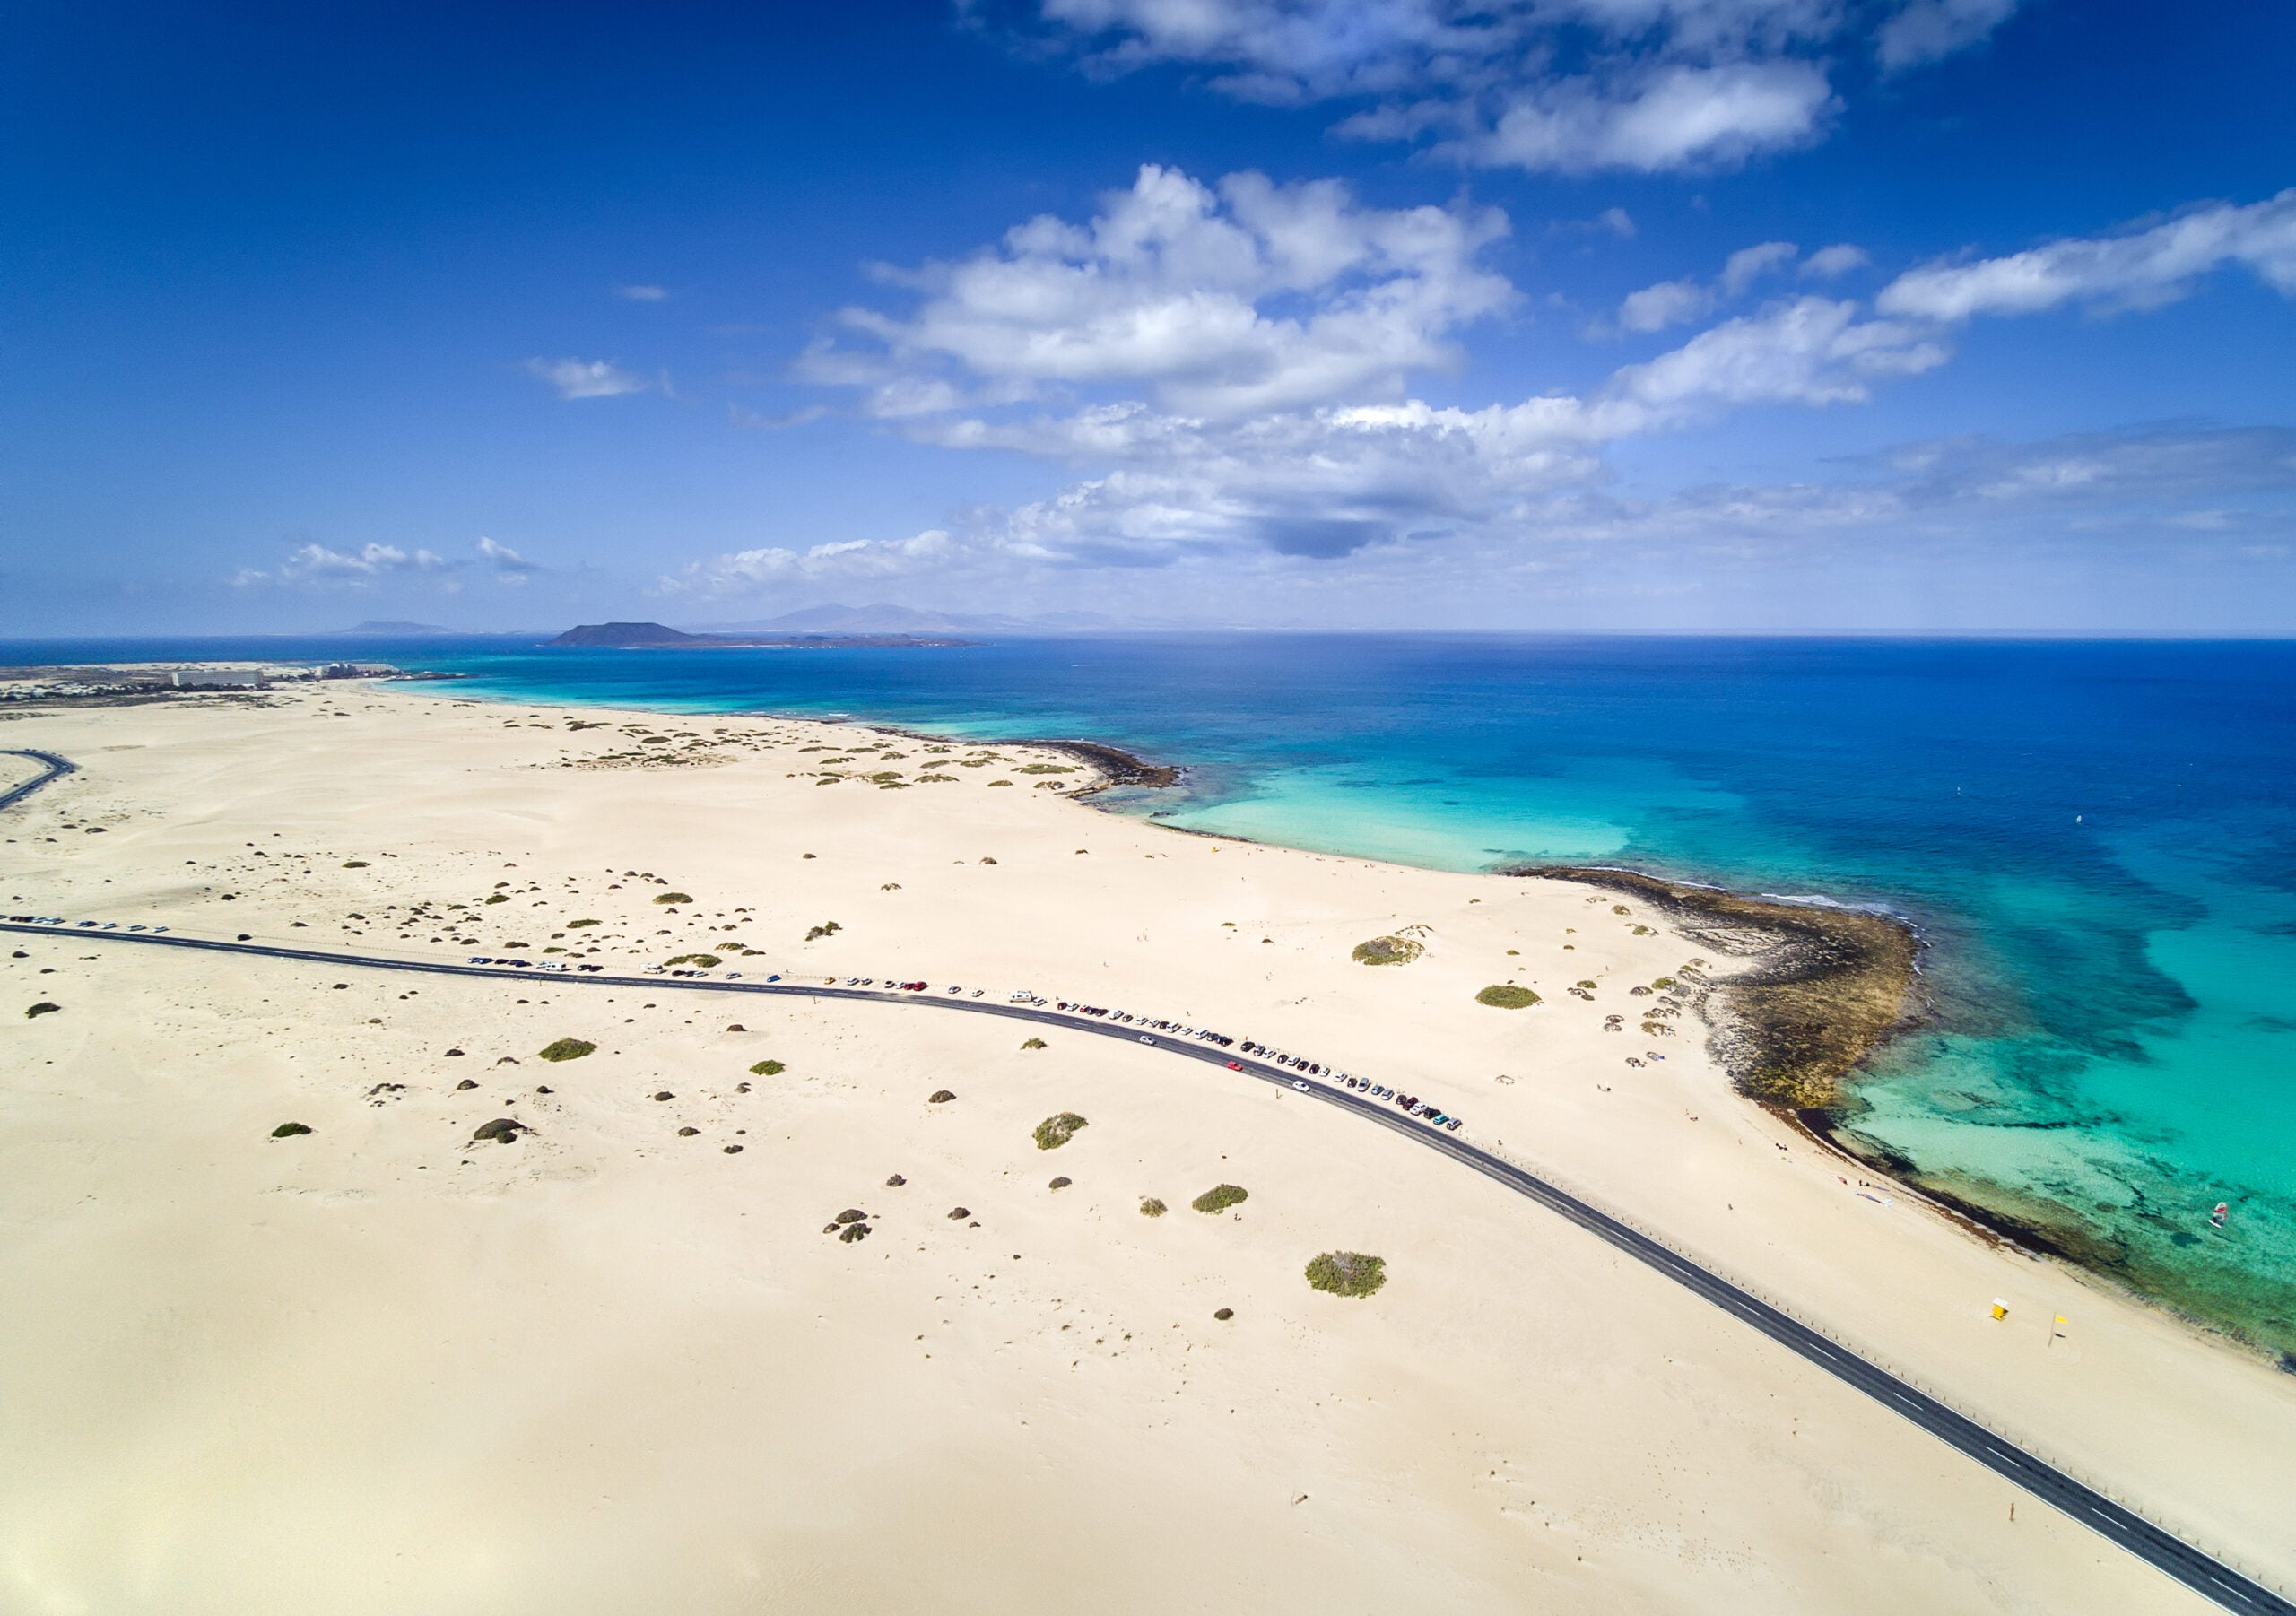 Airlines launch new routes from around the UK to the Canary Islands to meet demand